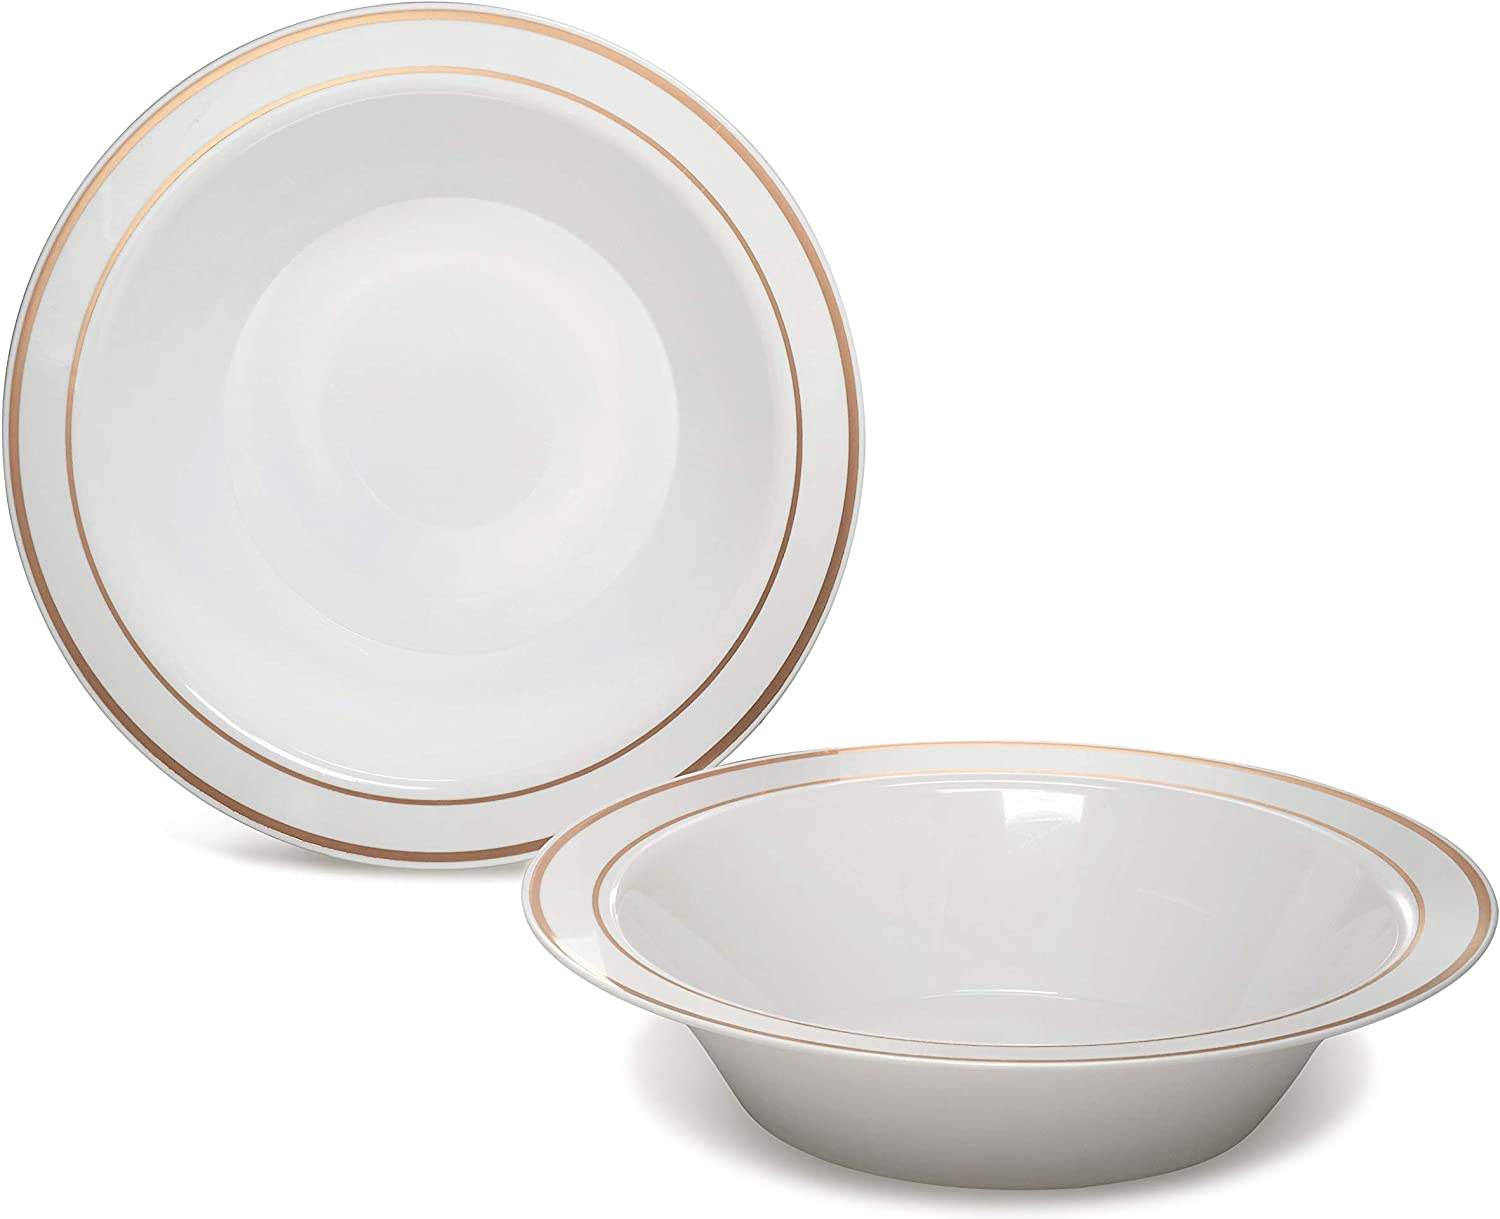 OCCASIONS 120 Bowls Pack, Heavyweight Disposable Wedding Party Plastic Bowls (14oz Soup Bowl, White & Rose Gold Rim) 71dKNuCbyML